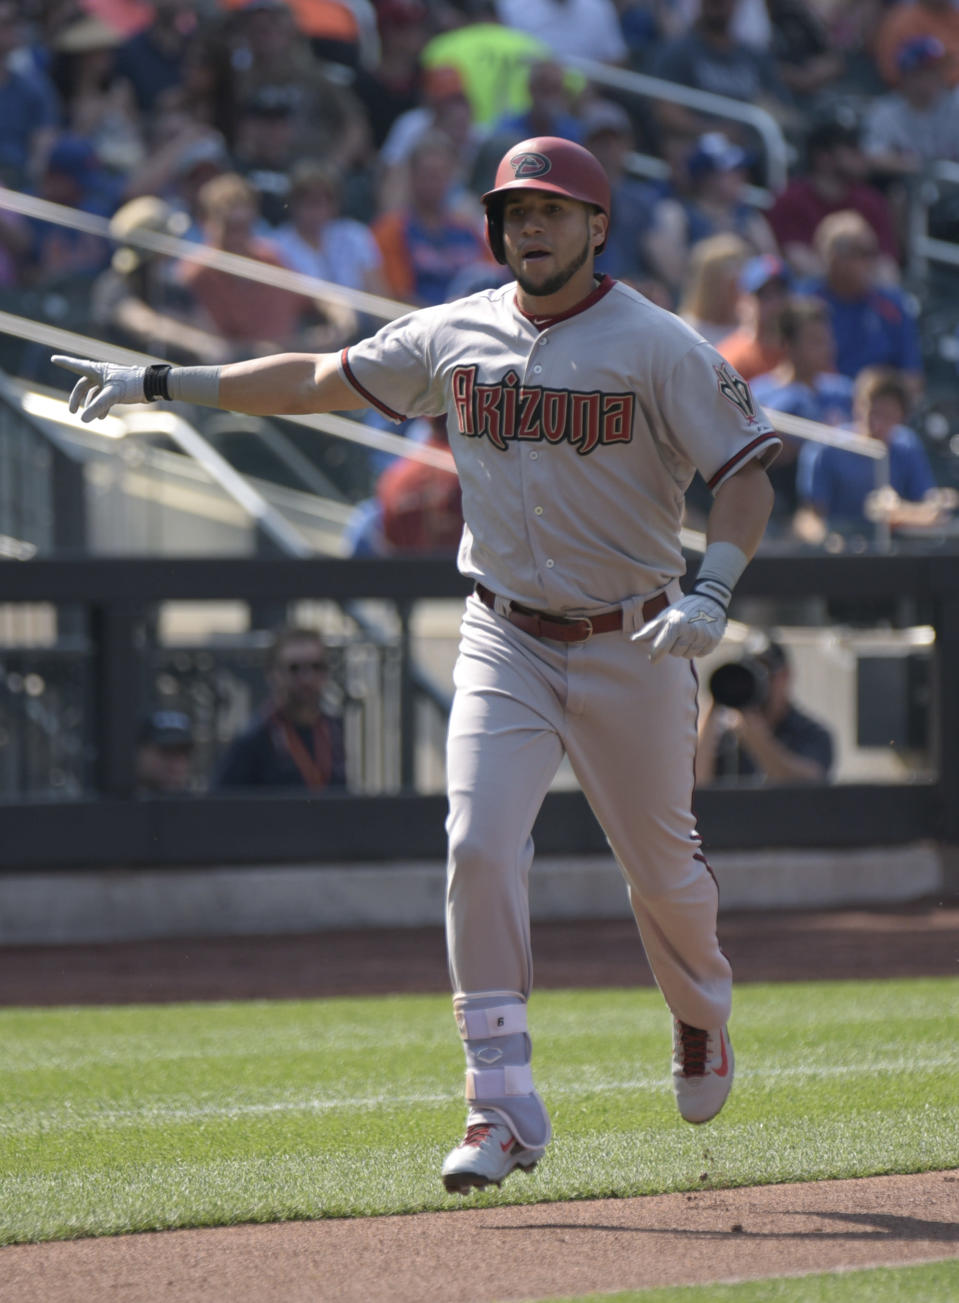 Arizona Diamondbacks' David Peralta celebrates as he come home after hitting a two-run home run during the first inning of a baseball game against the New York Mets, Saturday, July 11, 2015, at Citi Field in New York. (AP Photo/Bill Kostroun)